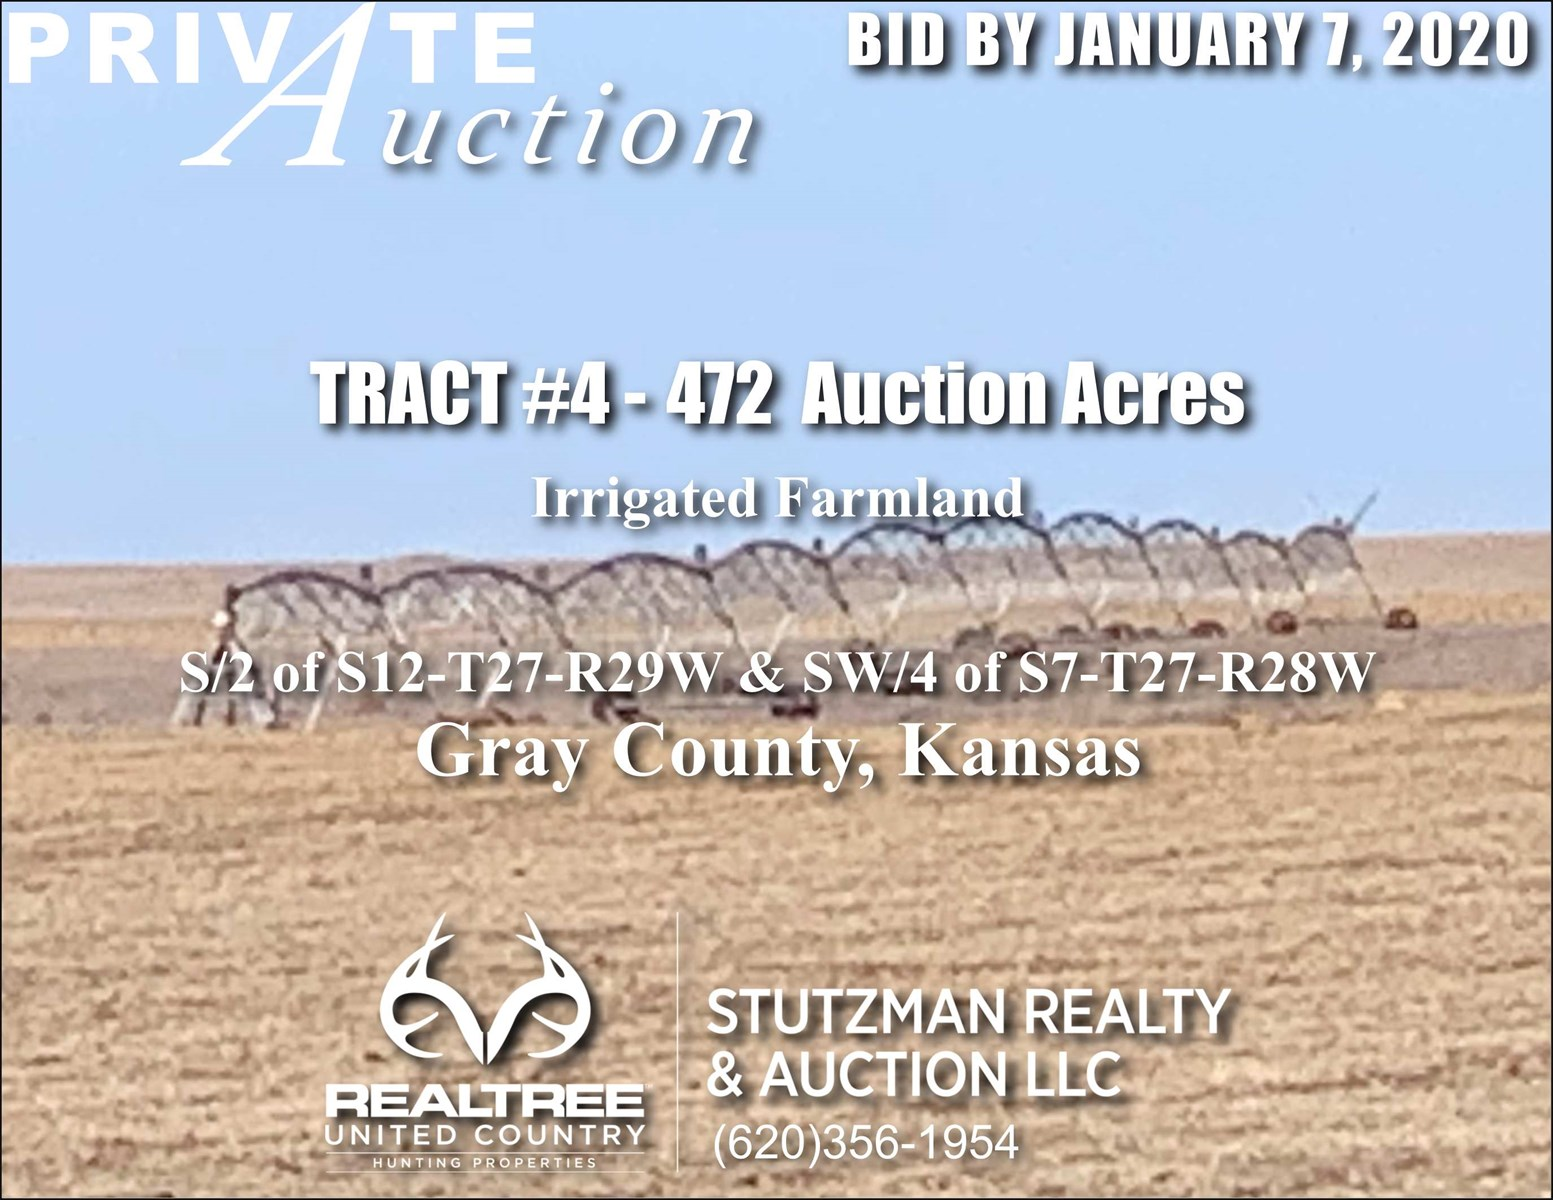 GRAY COUNTY KS - TR #4 - 472 ACRES IRRIGATED FARMLAND